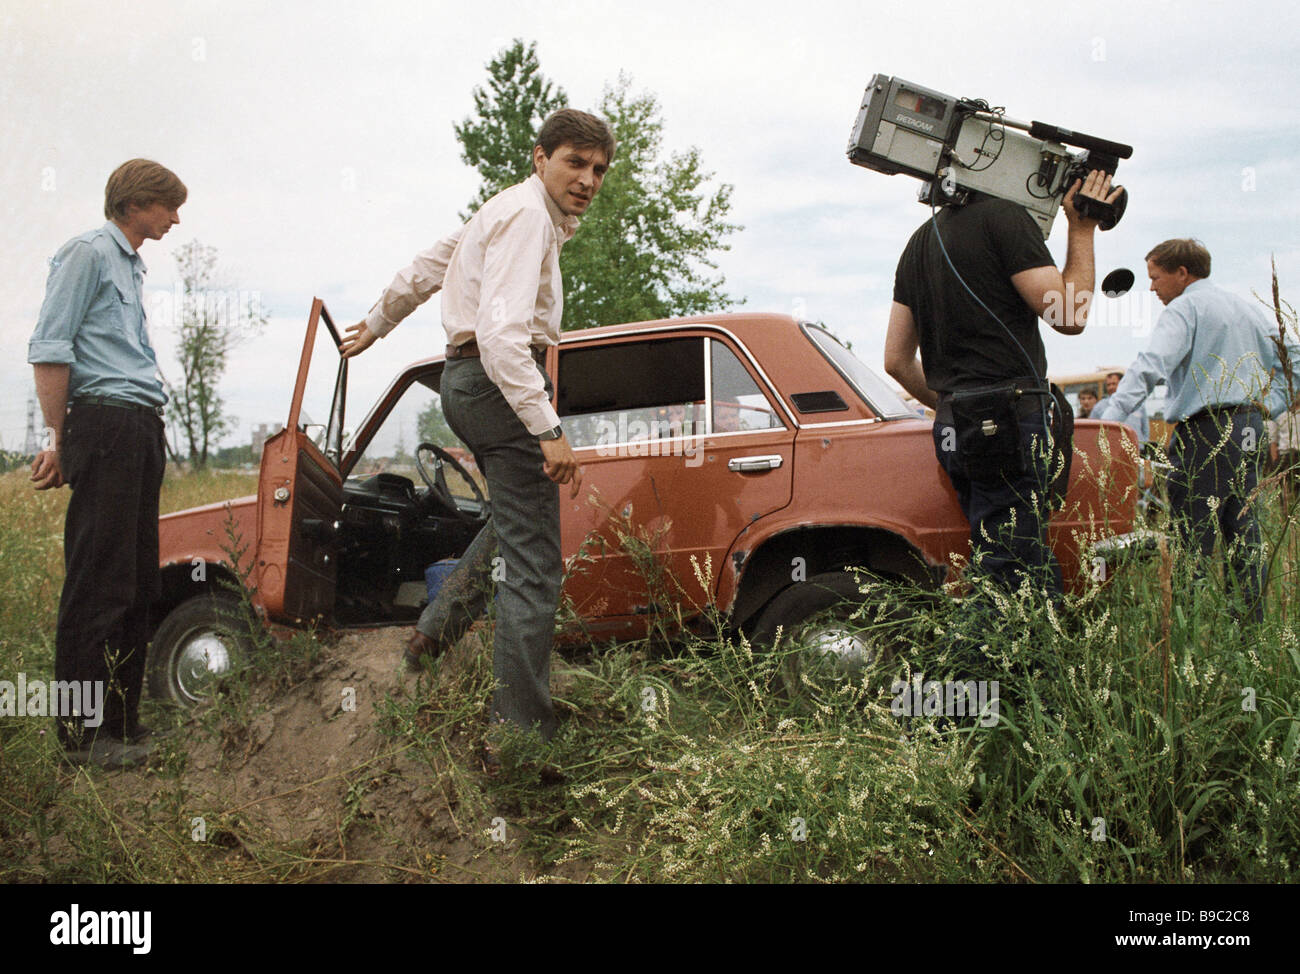 Alexander Nevzorov host of 600 Seconds news show center and TV camera crew arrive at scene of accident - Stock Image